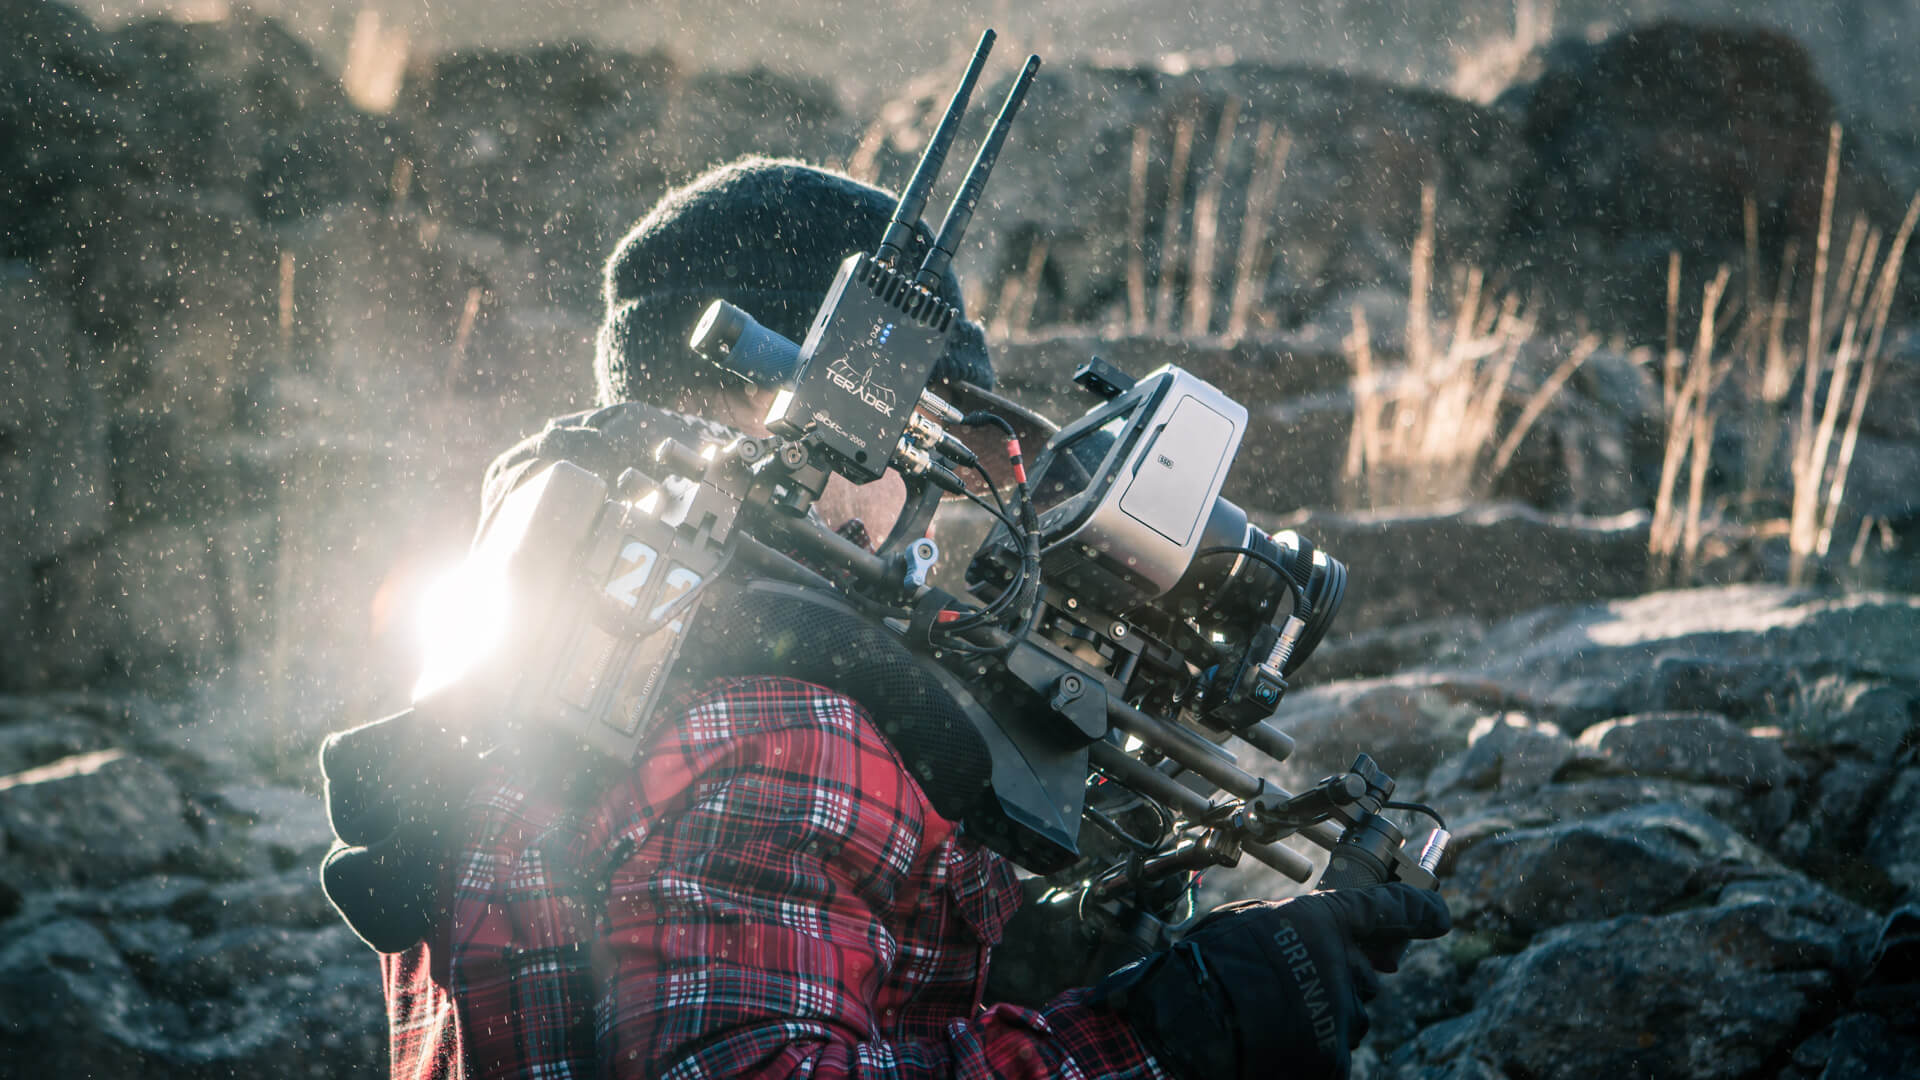 Cinematographer / DP Sam Nuttmann - Seattle - Wasteland Legends - Teradek Bolt wireless video